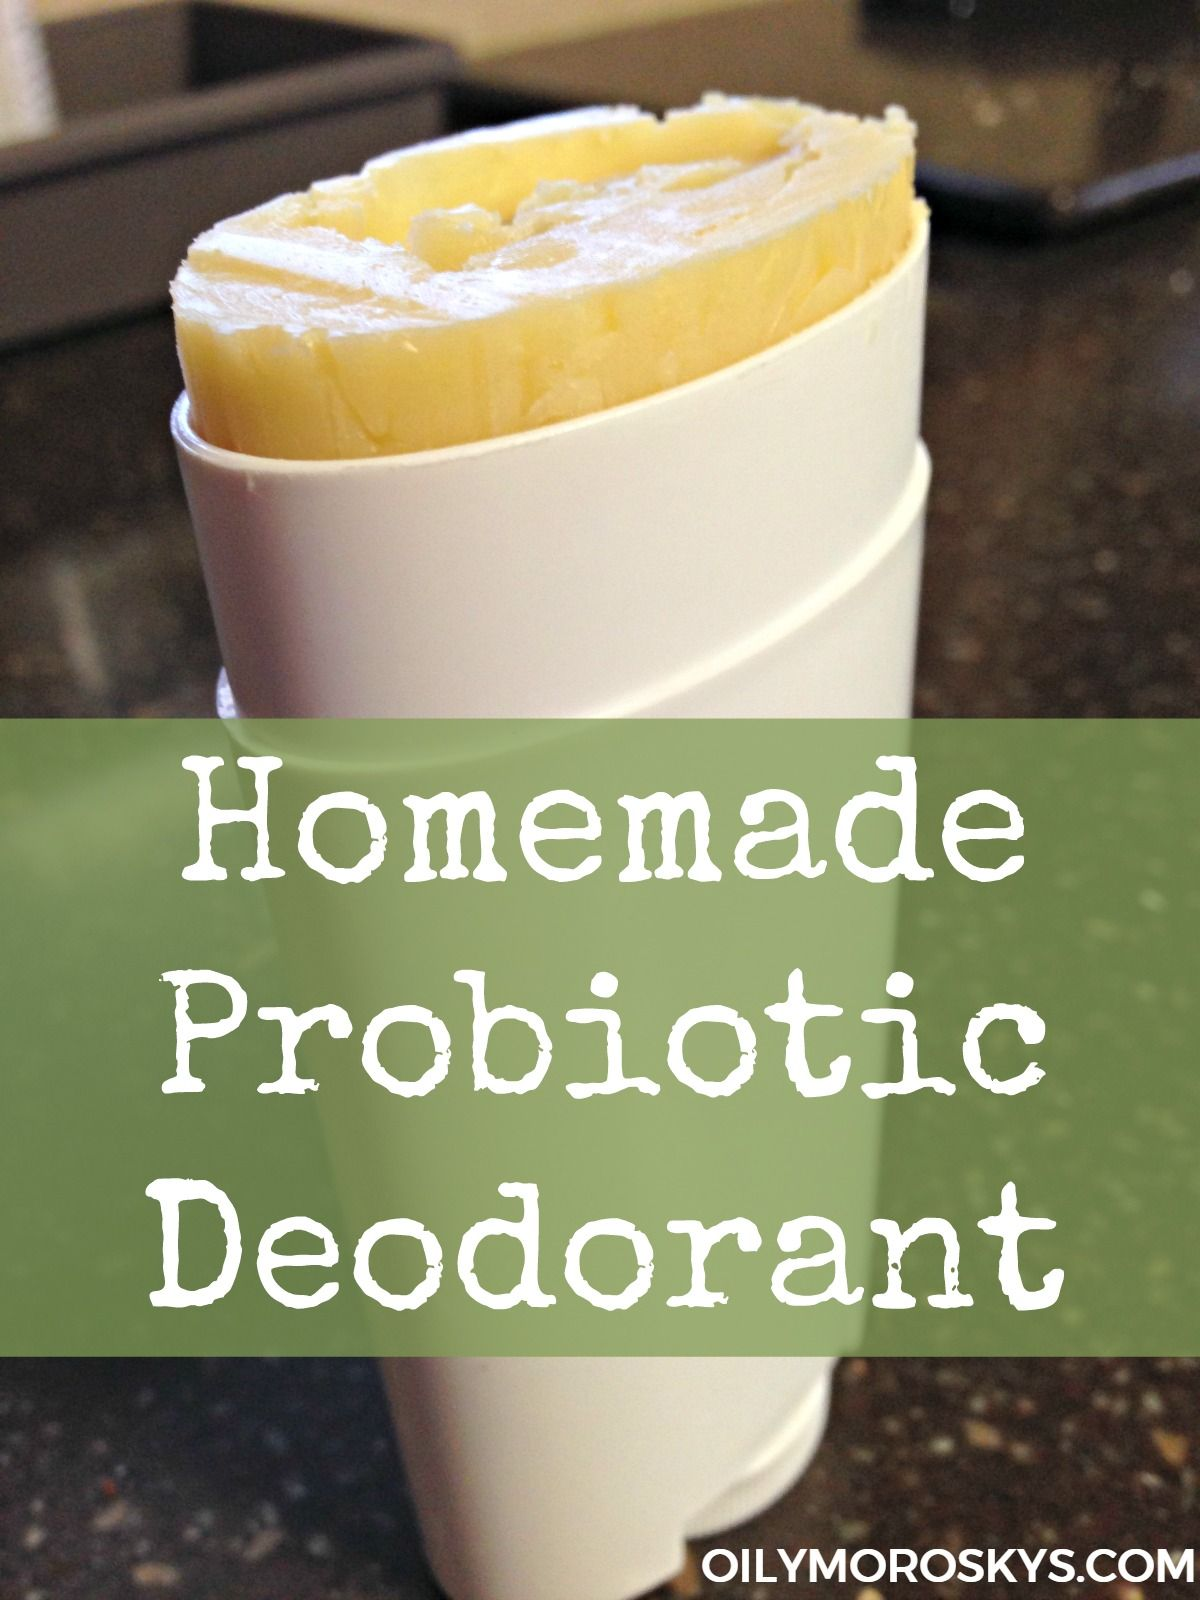 This Homemade Probiotic Deodorant Recipe Is A Natural